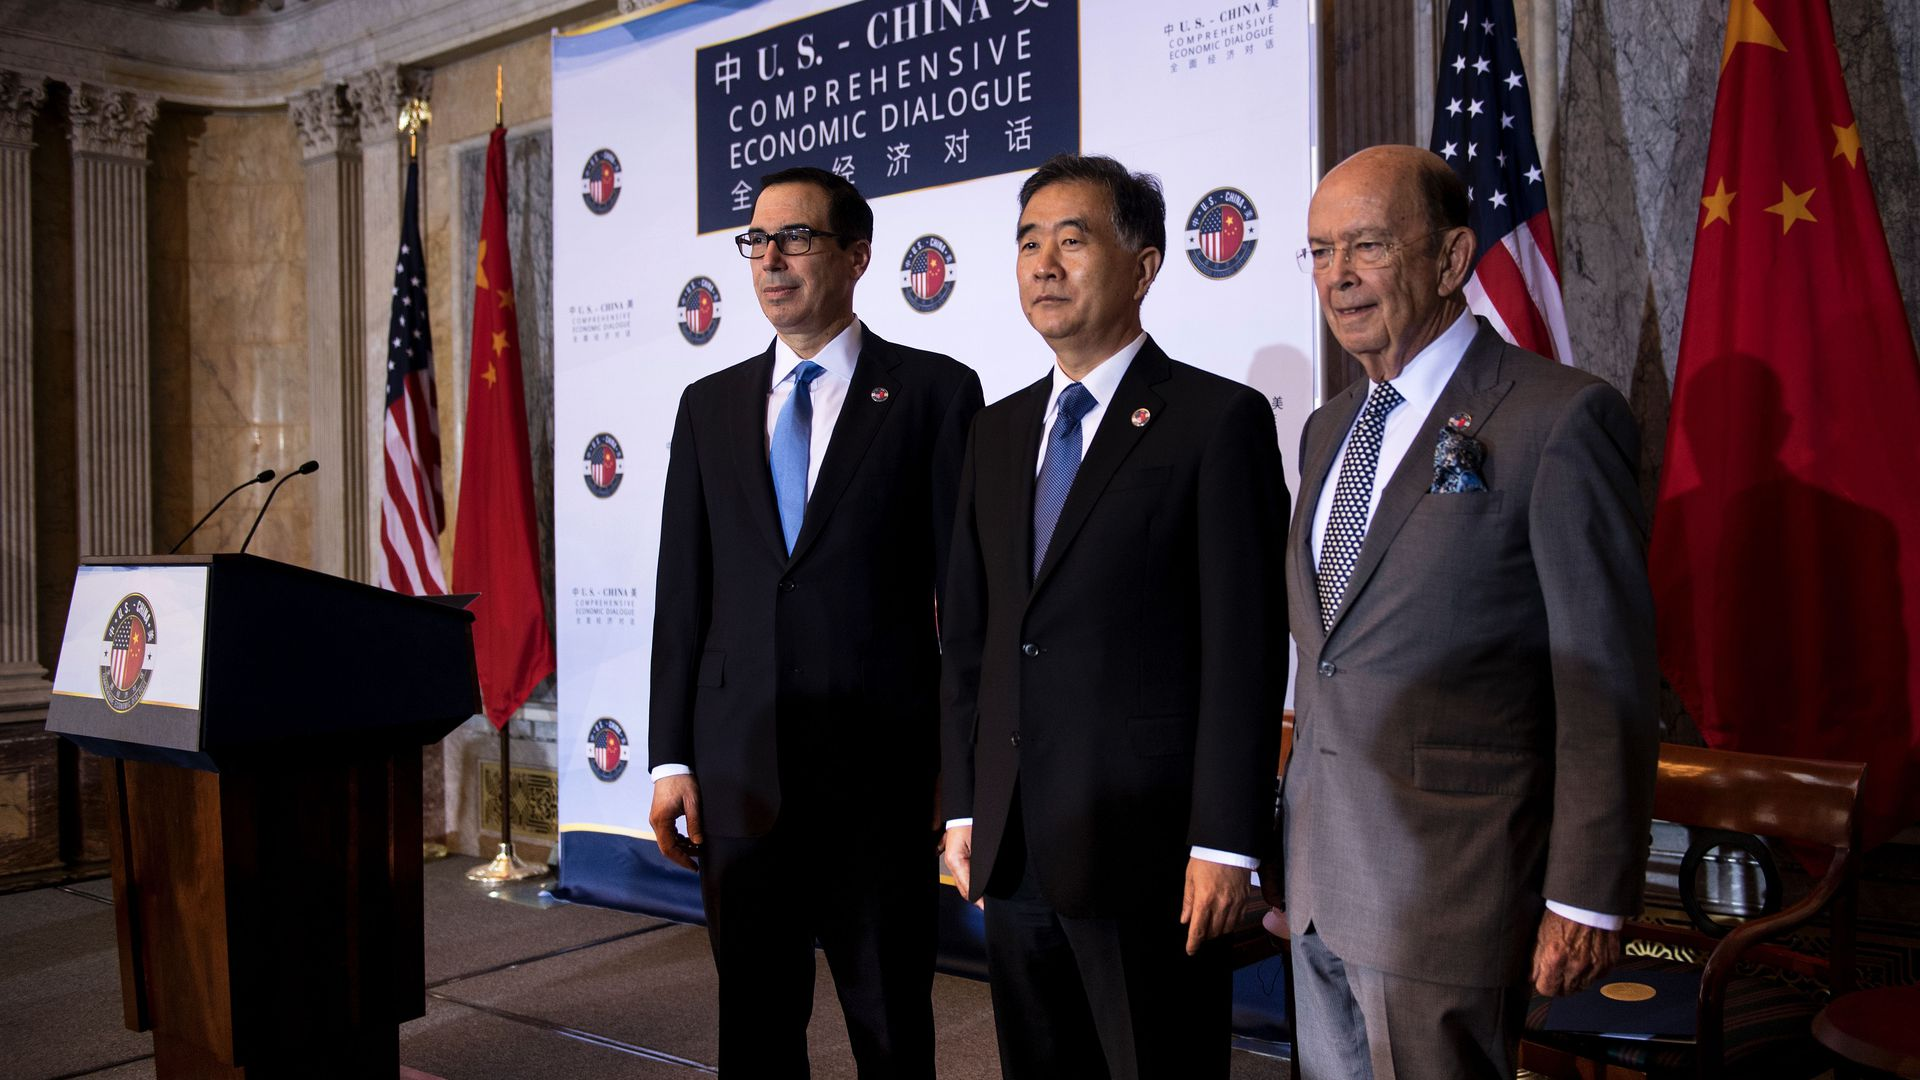 US Secretary of the Treasury Steven Mnuchin, Chinese Vice Premier Wang Yang and US Secretary of Commerce Wilbur Ross pose for a photo